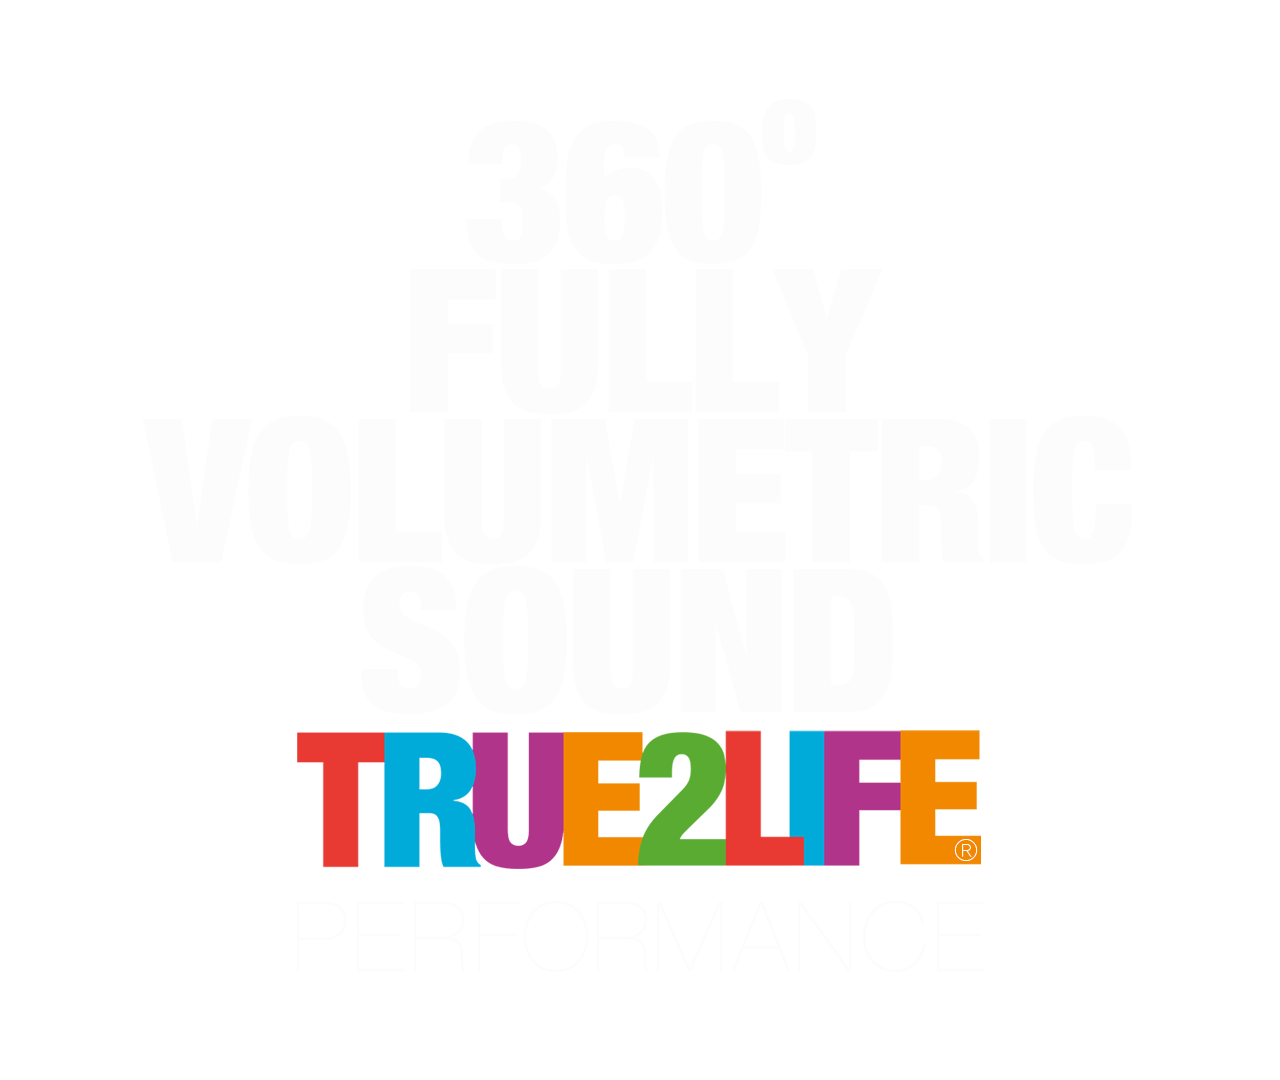 360 FULLY VOLUMETRIC SOUND - TRUE2LIFE PERFORMANCE